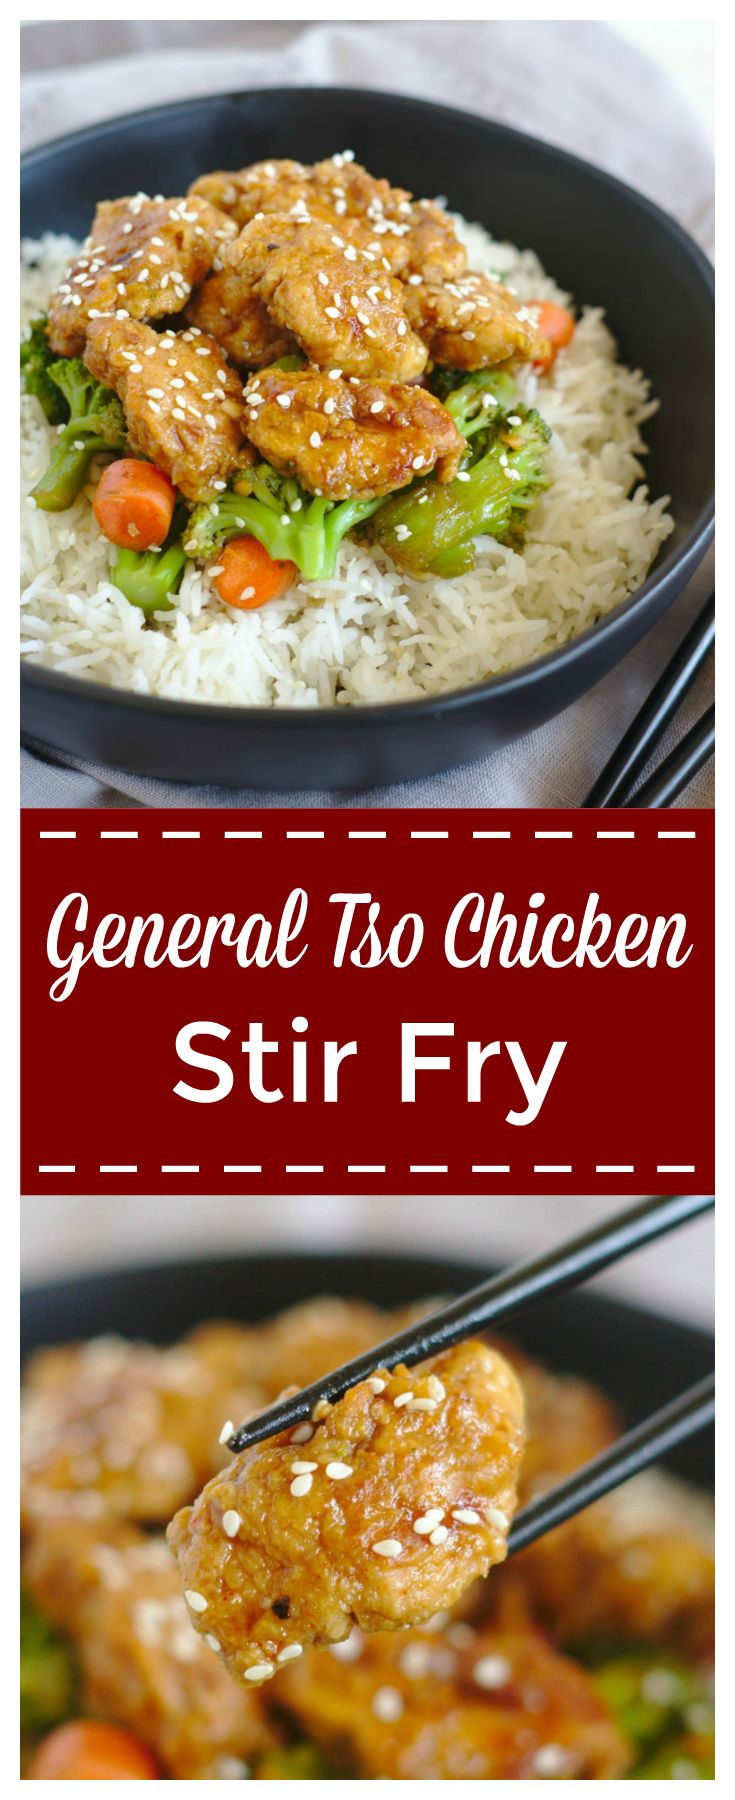 General Tso Chicken Stir Fry – Skip the takeout and try making this easy 30 minute meal! Breaded chicken baked and covered in a delicious general tso sauce! Add in some vegetables and dig in! #asian #chinese #stirfry #chicken #generaltso